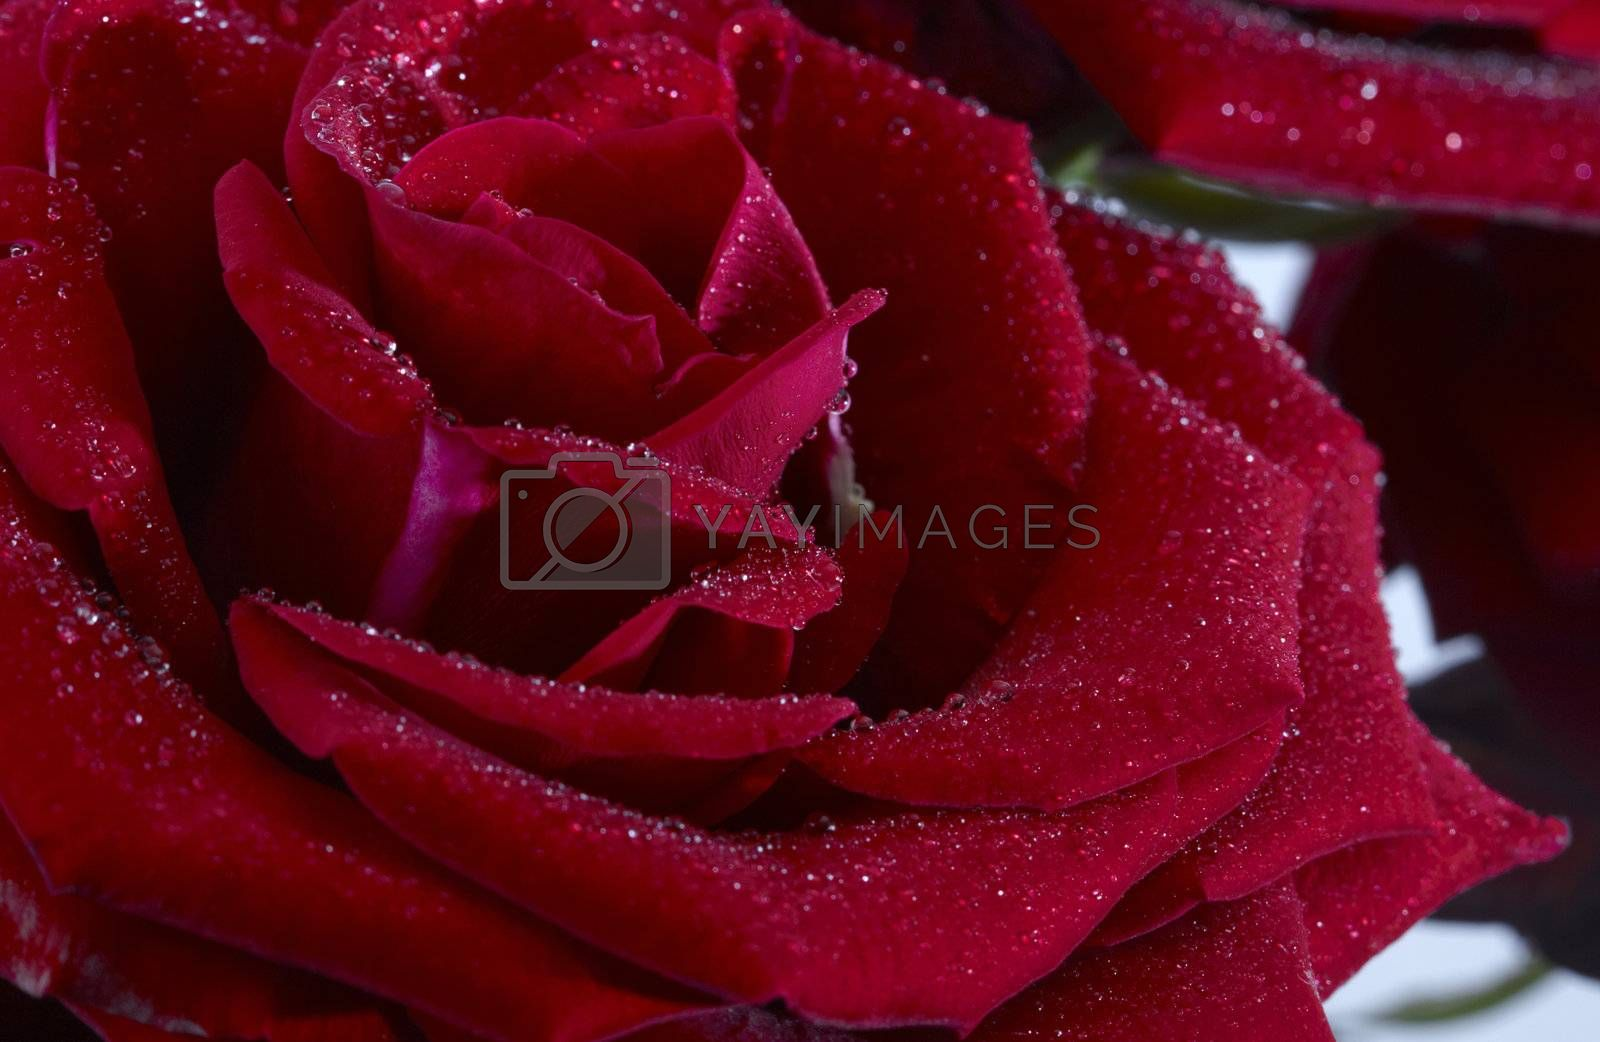 Close-up of a red rose with dew